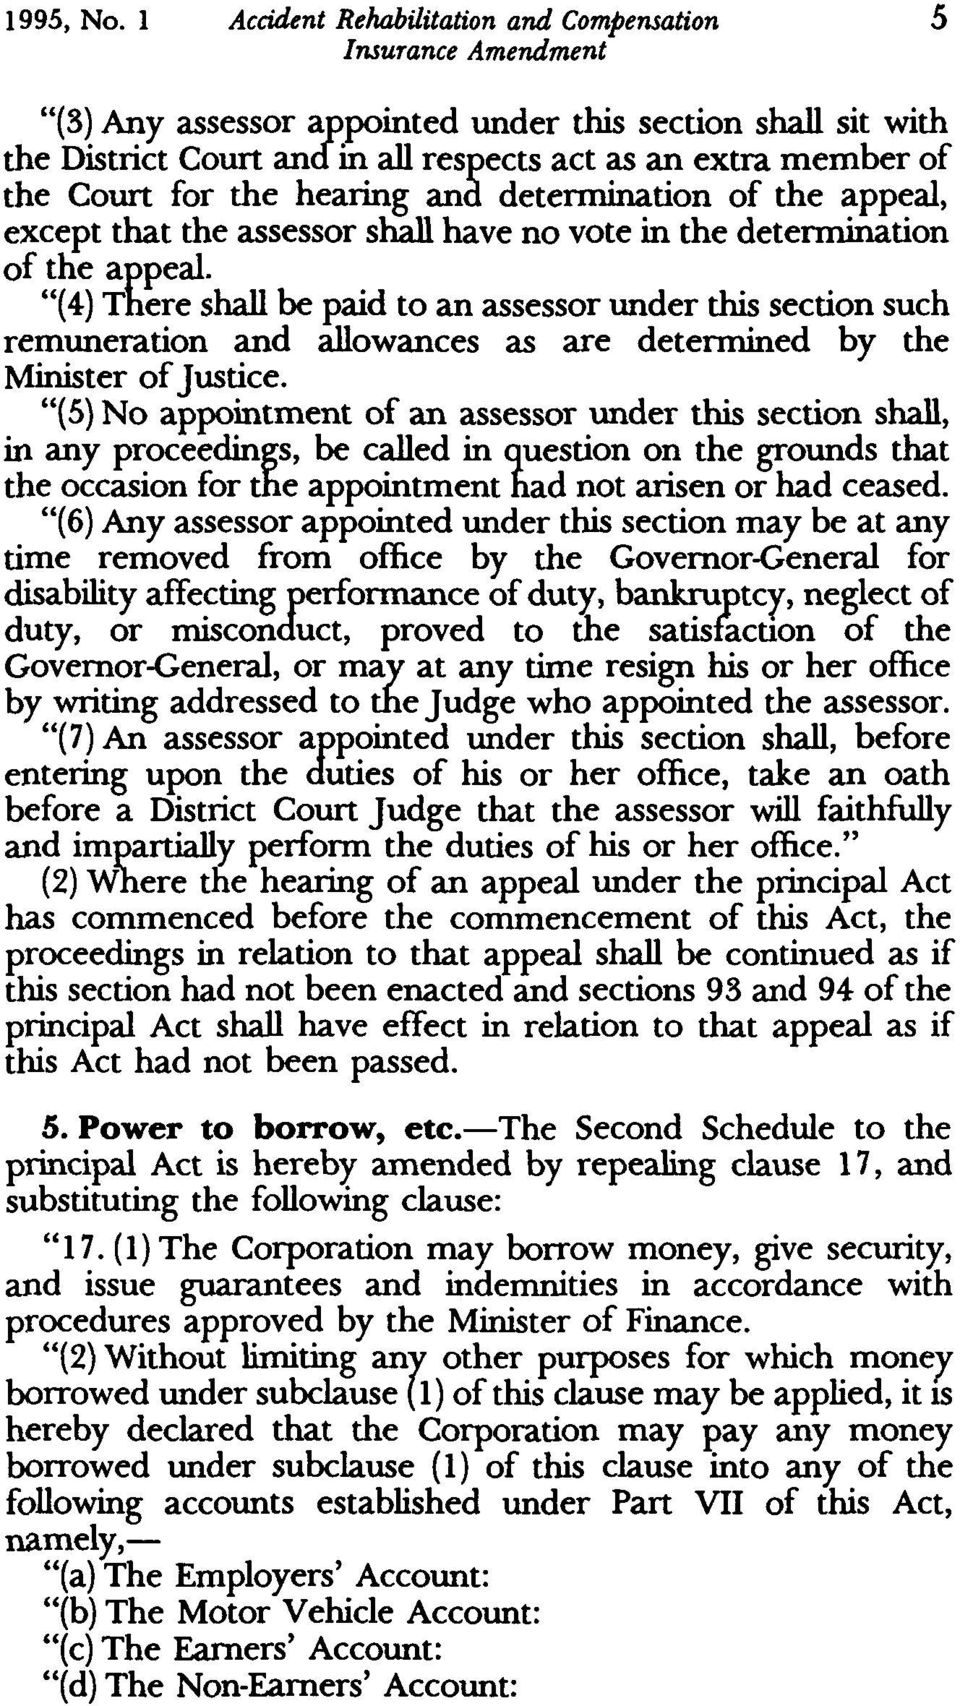 """(5) No app<?intment of an assessor under this section shall, in any proceedings, be called in question on the ~ounds that the occasion for the appointment had not arisen or had ceased."